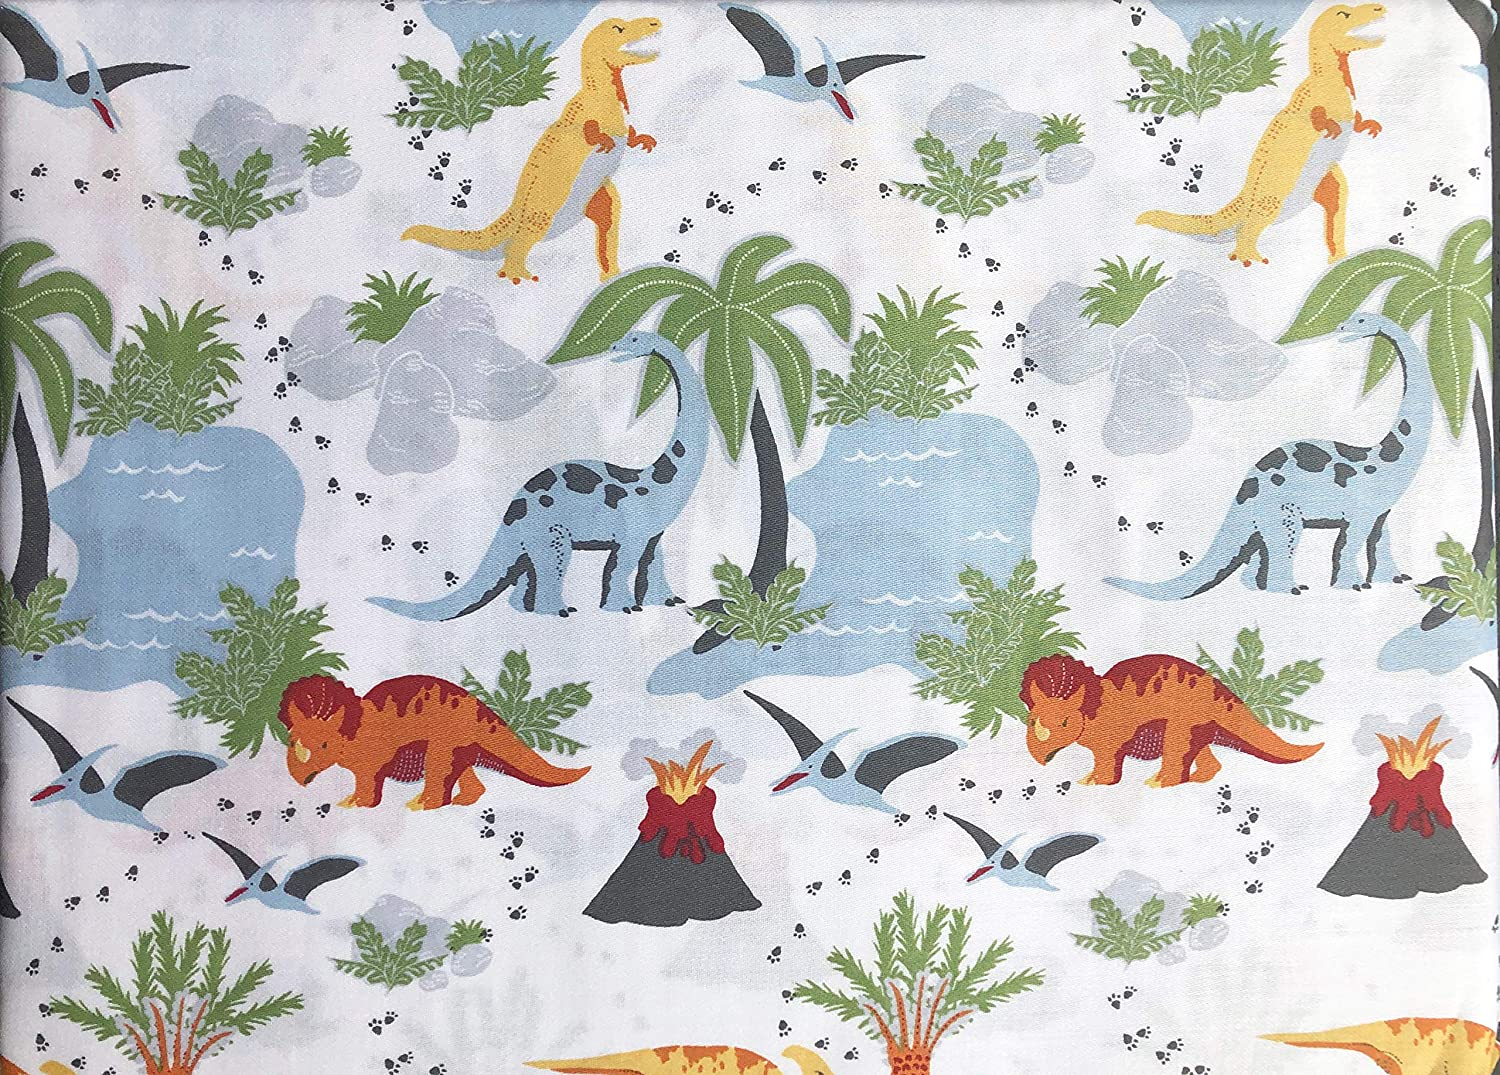 Max Studio Kids Bedding 3 Piece Twin Size Single Bed Cotton Sateen Sheet Set Dinosaur Forest Palm Trees Volcanoes Lakes